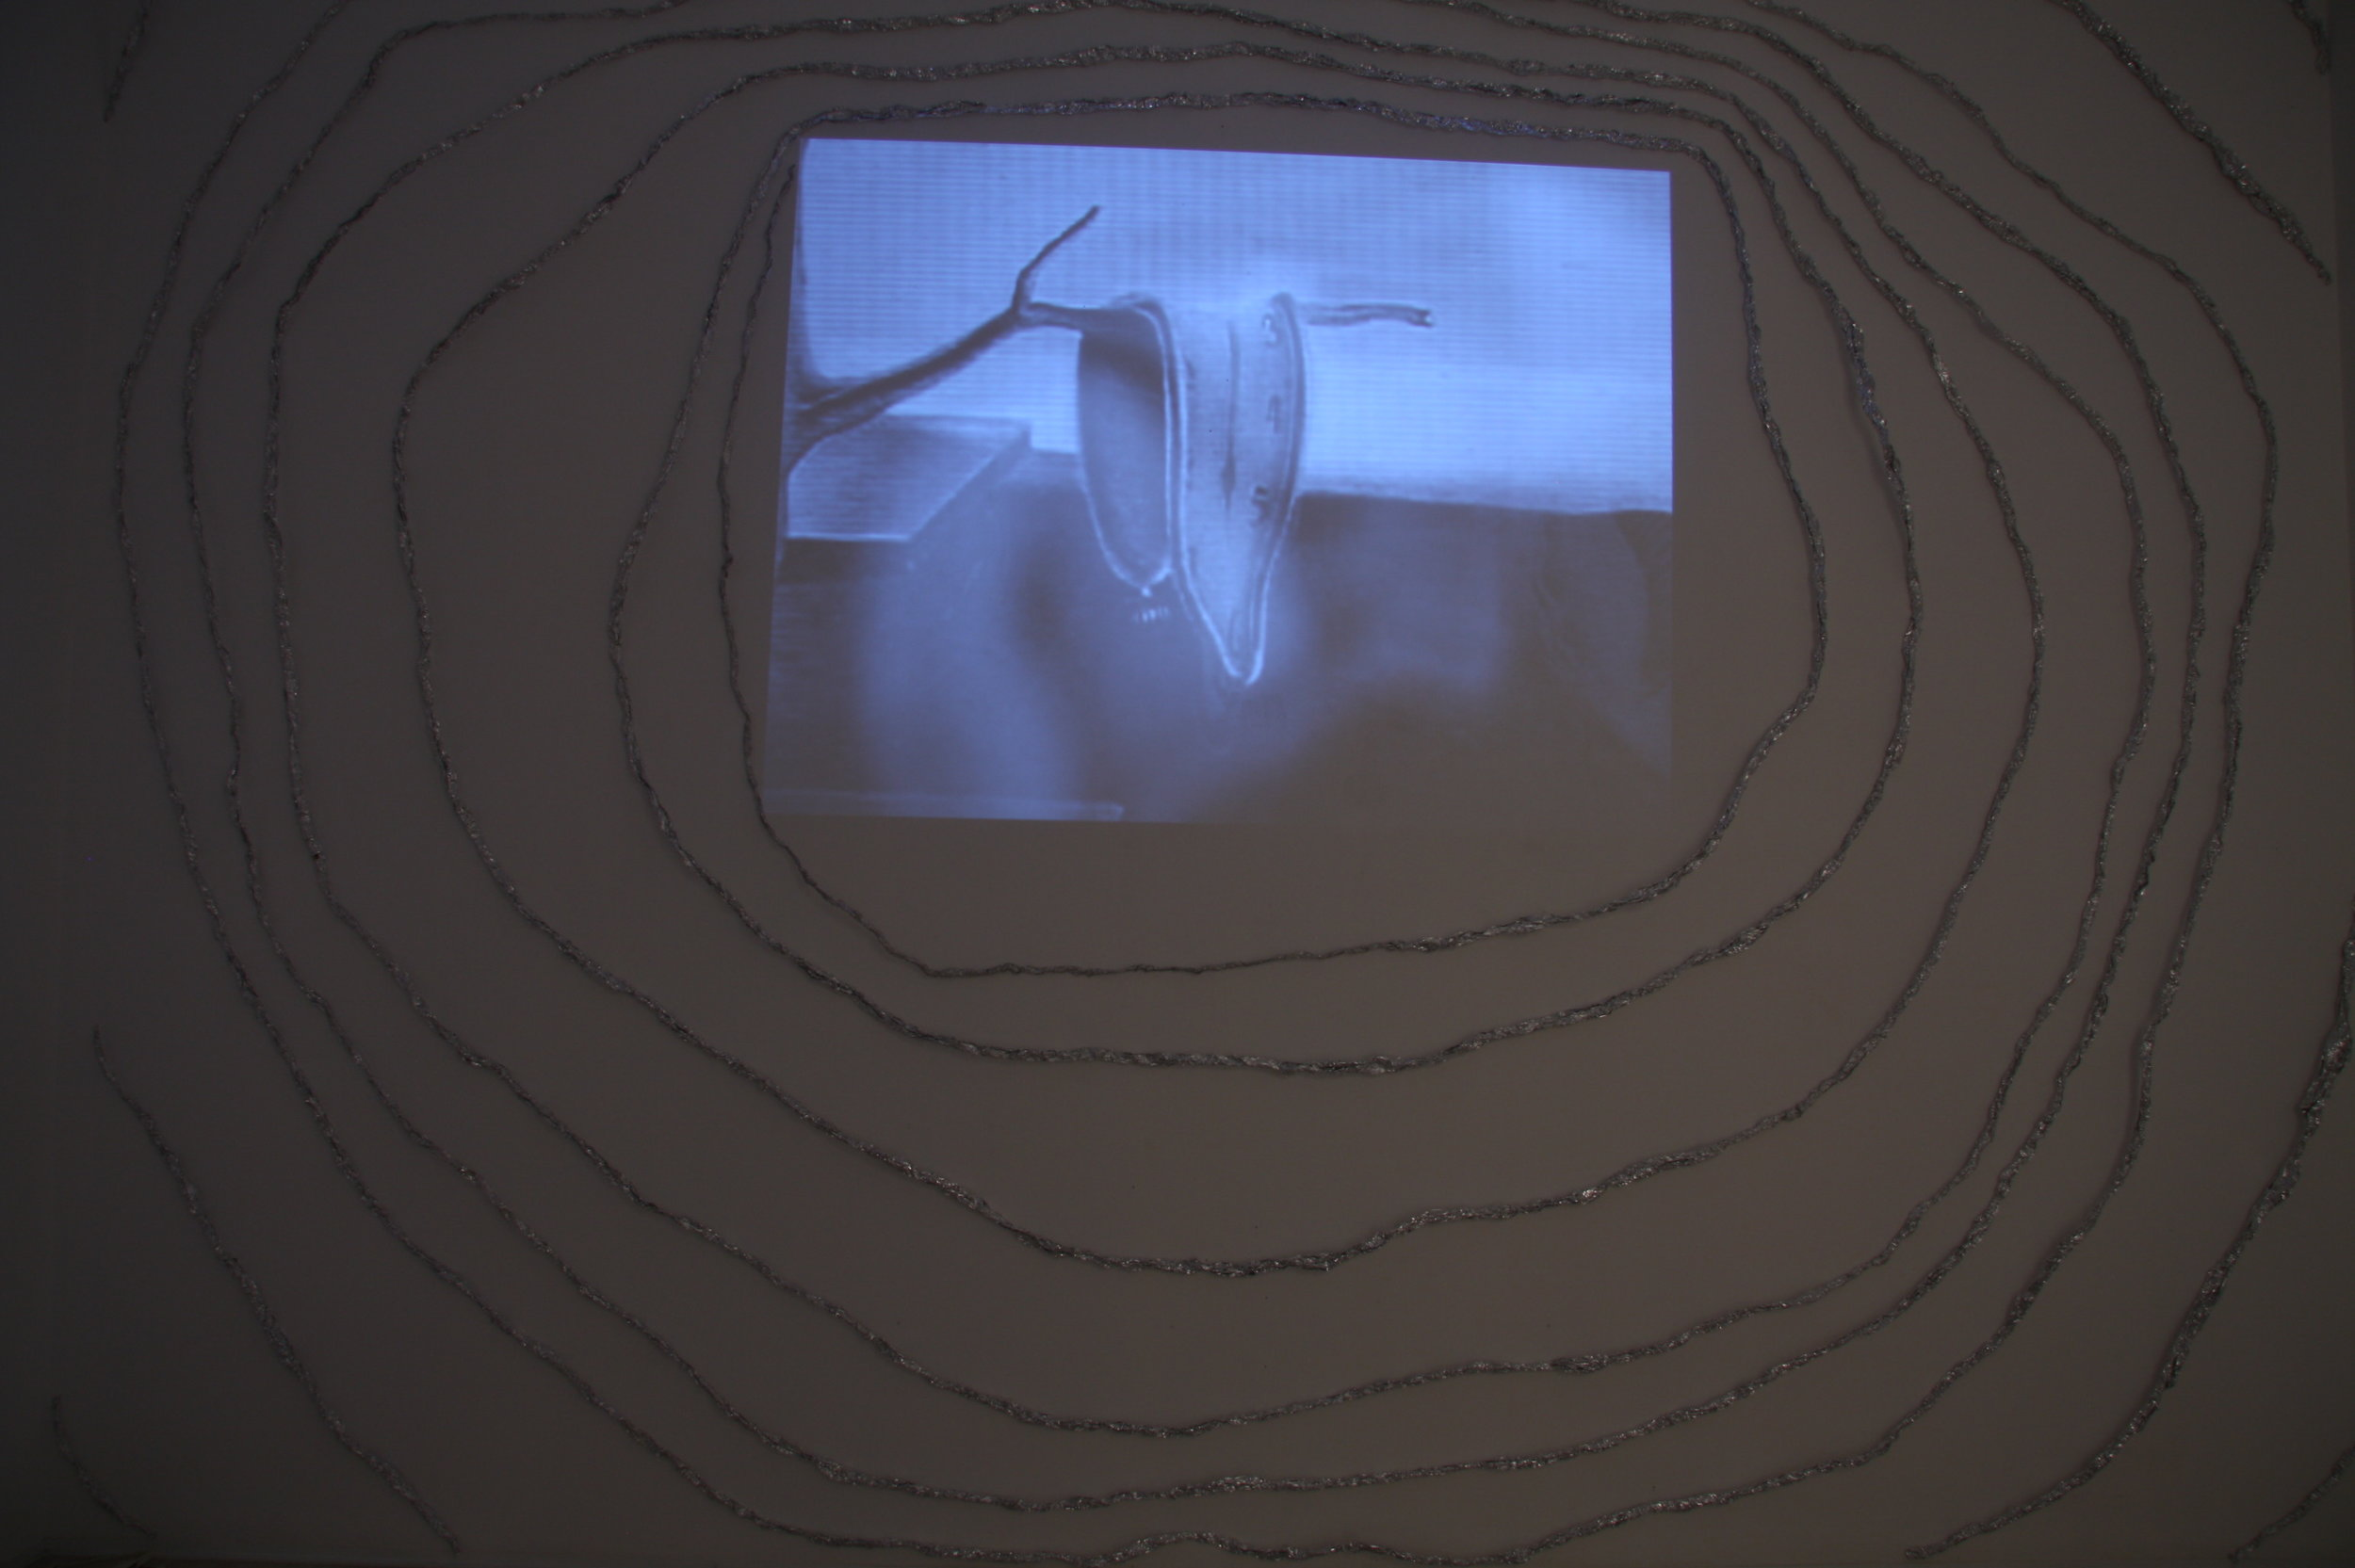 MATTHEW HOPKINS  Bent Time (Dali Redux)  P.O.A. 2009 Video installation dimensions variable